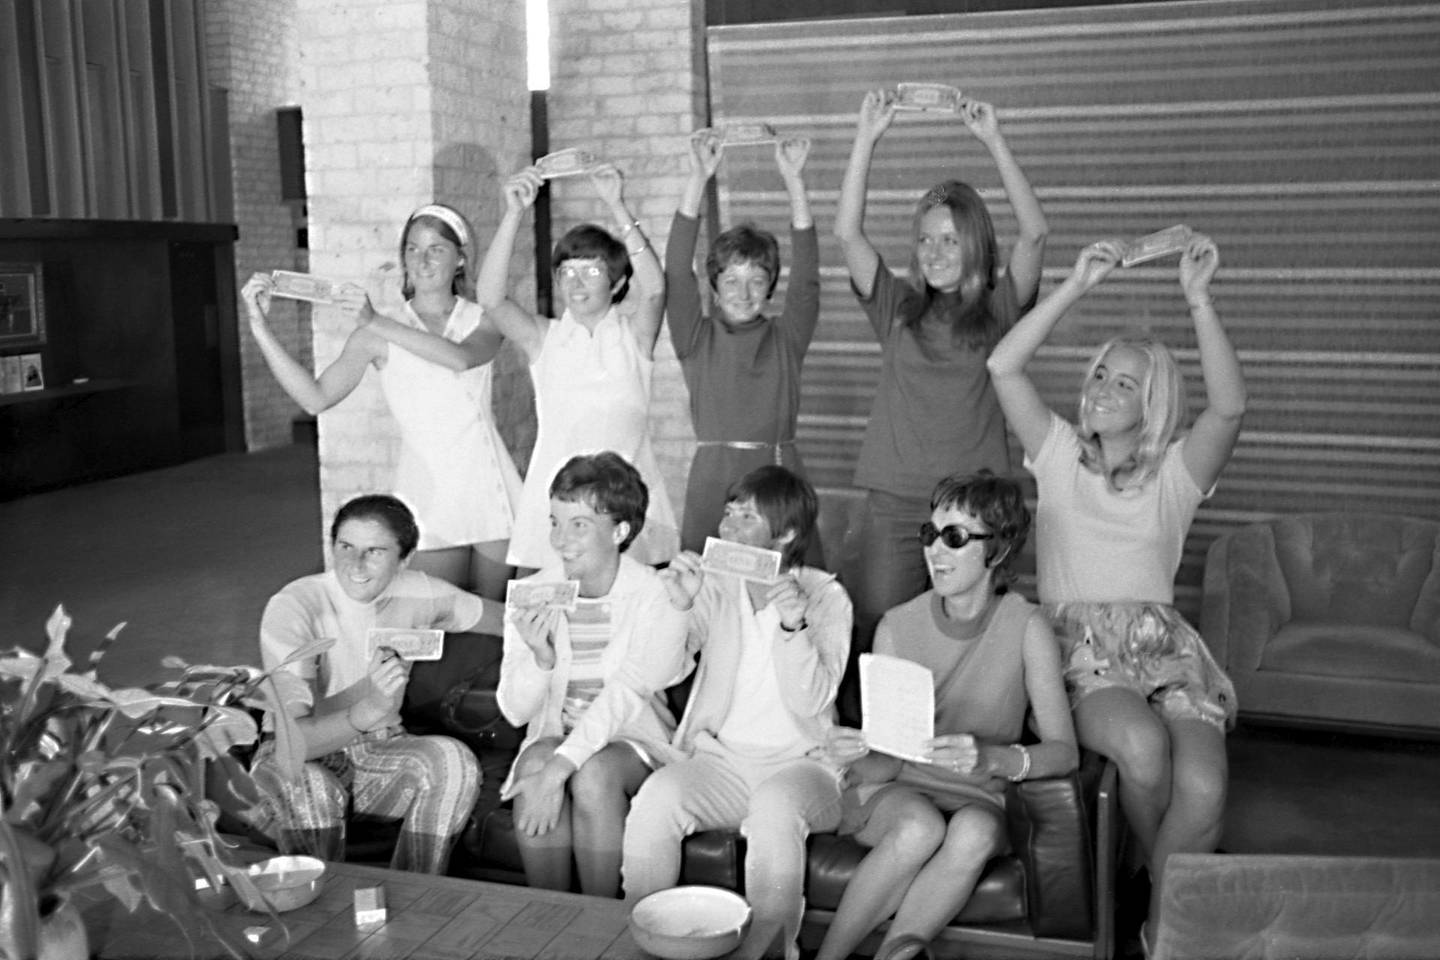 In this Sept. 23, 1970, photo provided the Houston Library, tennis players hold up $1 bills after signing a contract with World Tennis magazine publisher Gladys Heldman to turn pro and start the Virginia Slims tennis circuit. From left standing are: Valerie Ziegenfuss, Billie Jean King, Nancy Richey and Peaches Bartkowicz. From left seated are: Judy Tegart Dalton, Kerry Melville Reid, Rosie Casals, Gladys Heldman and Kristy Pigeon. Gladys Heldman replaced her daughter, Julie Heldman, who was injured and unable to pose for the 1970 photo.  It's the 50th anniversary of Billie Jean King and eight other women breaking away from the tennis establishment in 1970 and signing a $1 contract to form the Virginia Slims circuit. That led to the WTA Tour, which offers millions in prize money. (Bela Ugrin/Courtesy Houston Library via AP)